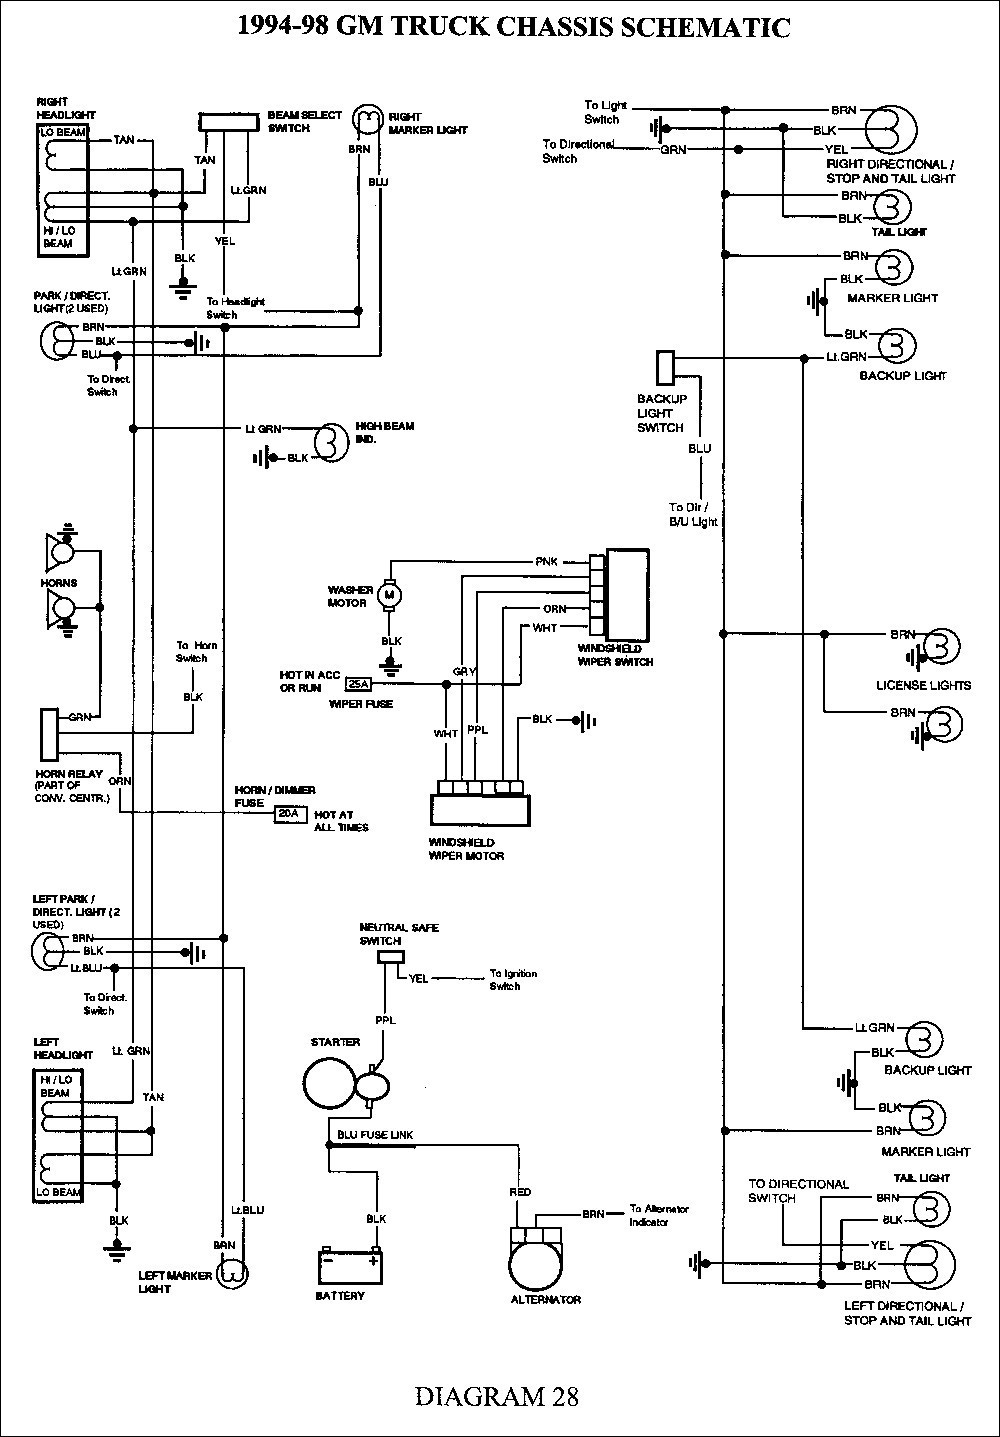 2015 Chevy Trailer Wiring Diagram | Wiring Diagram - 2015 Trailer Wiring Diagram